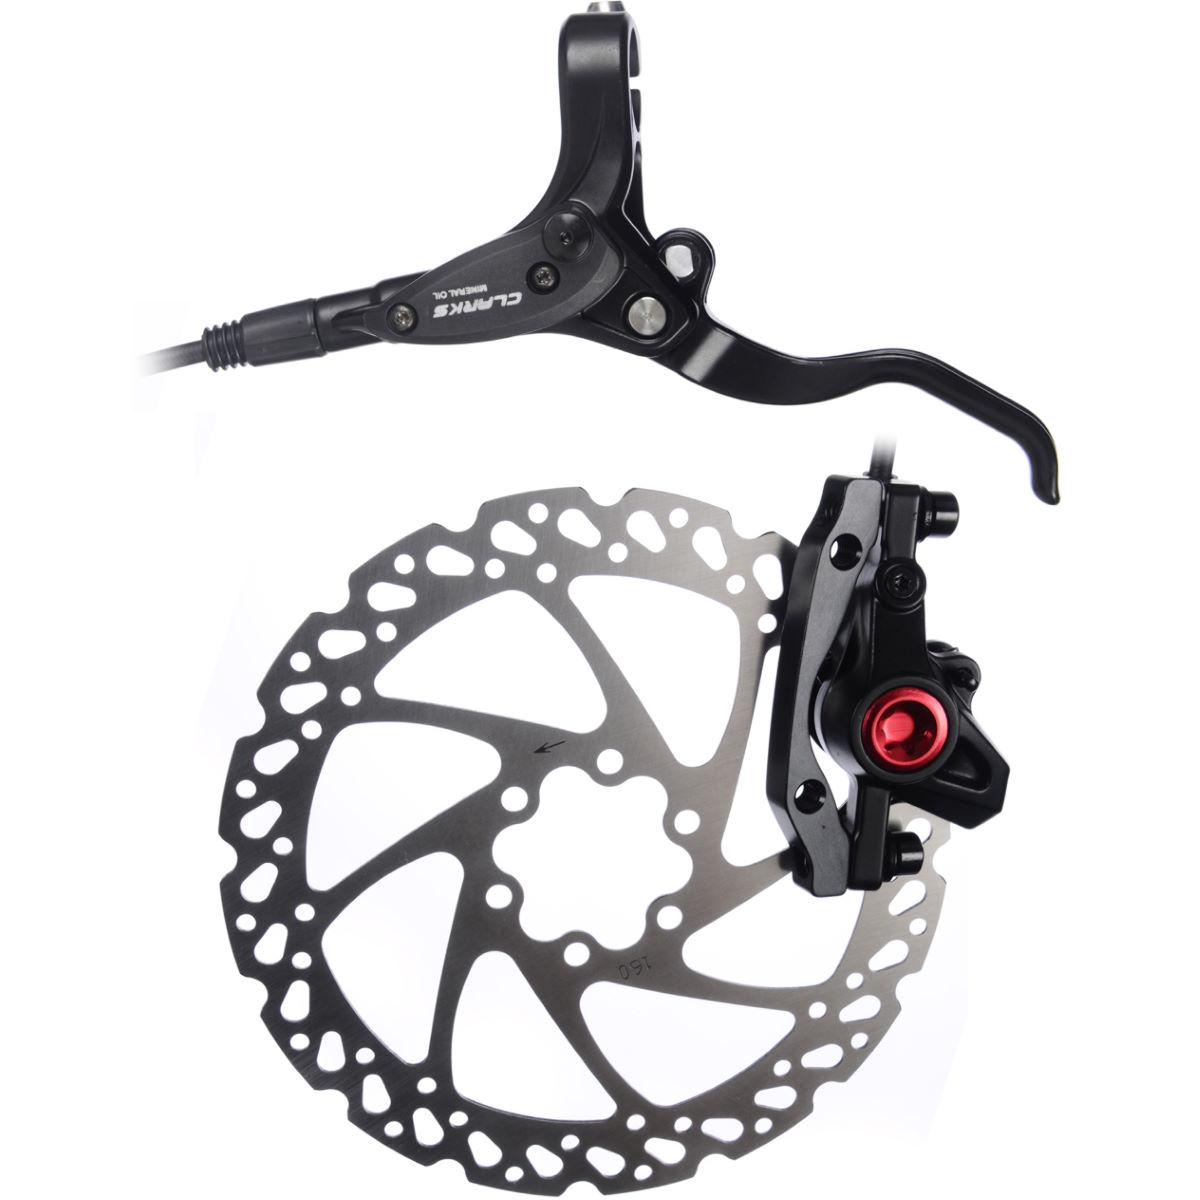 Clarks M2 Hydraulic Disc Brake + Rotor - Frenos de disco